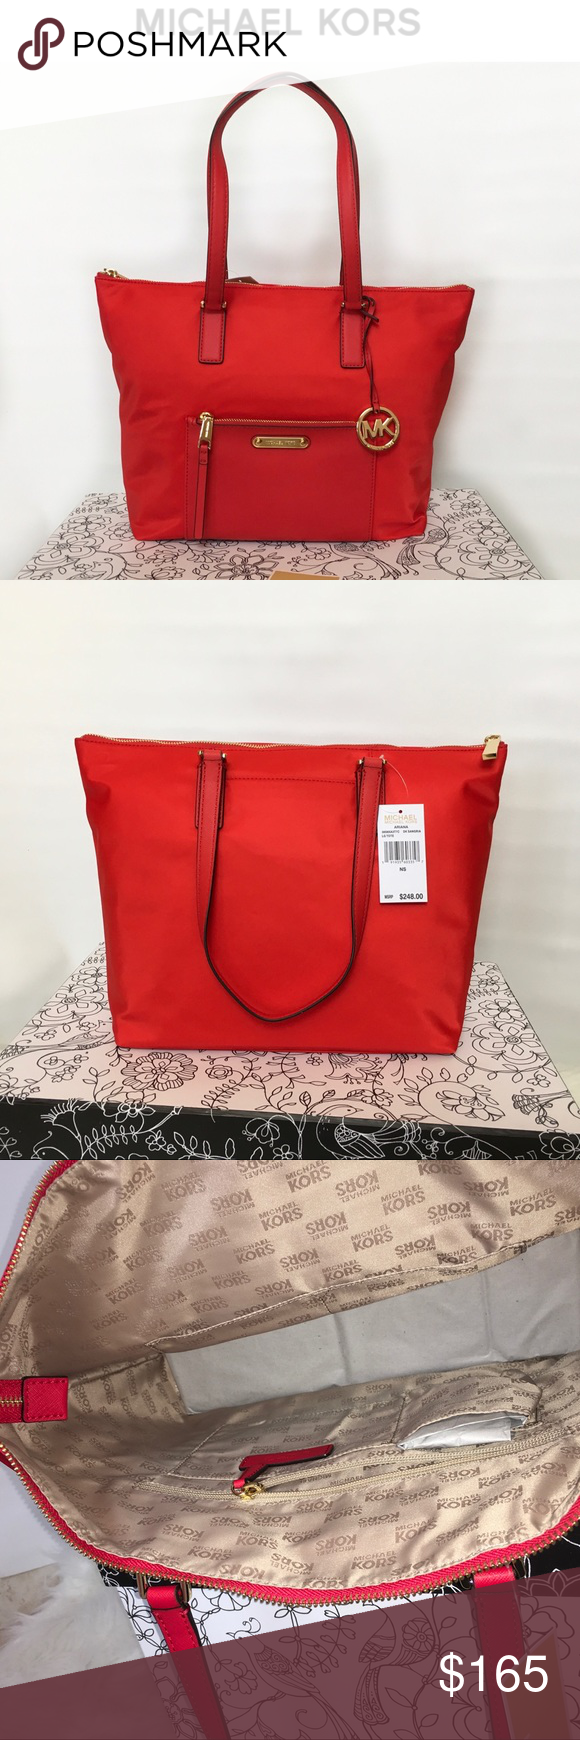 56e5cf1a504d Michael Kors Ariana Large Tote Sangria Red NWT Brand new with tags! Michael  Kors nylon Ariana nylon tote with leather accents. Large enough to fit  small ...